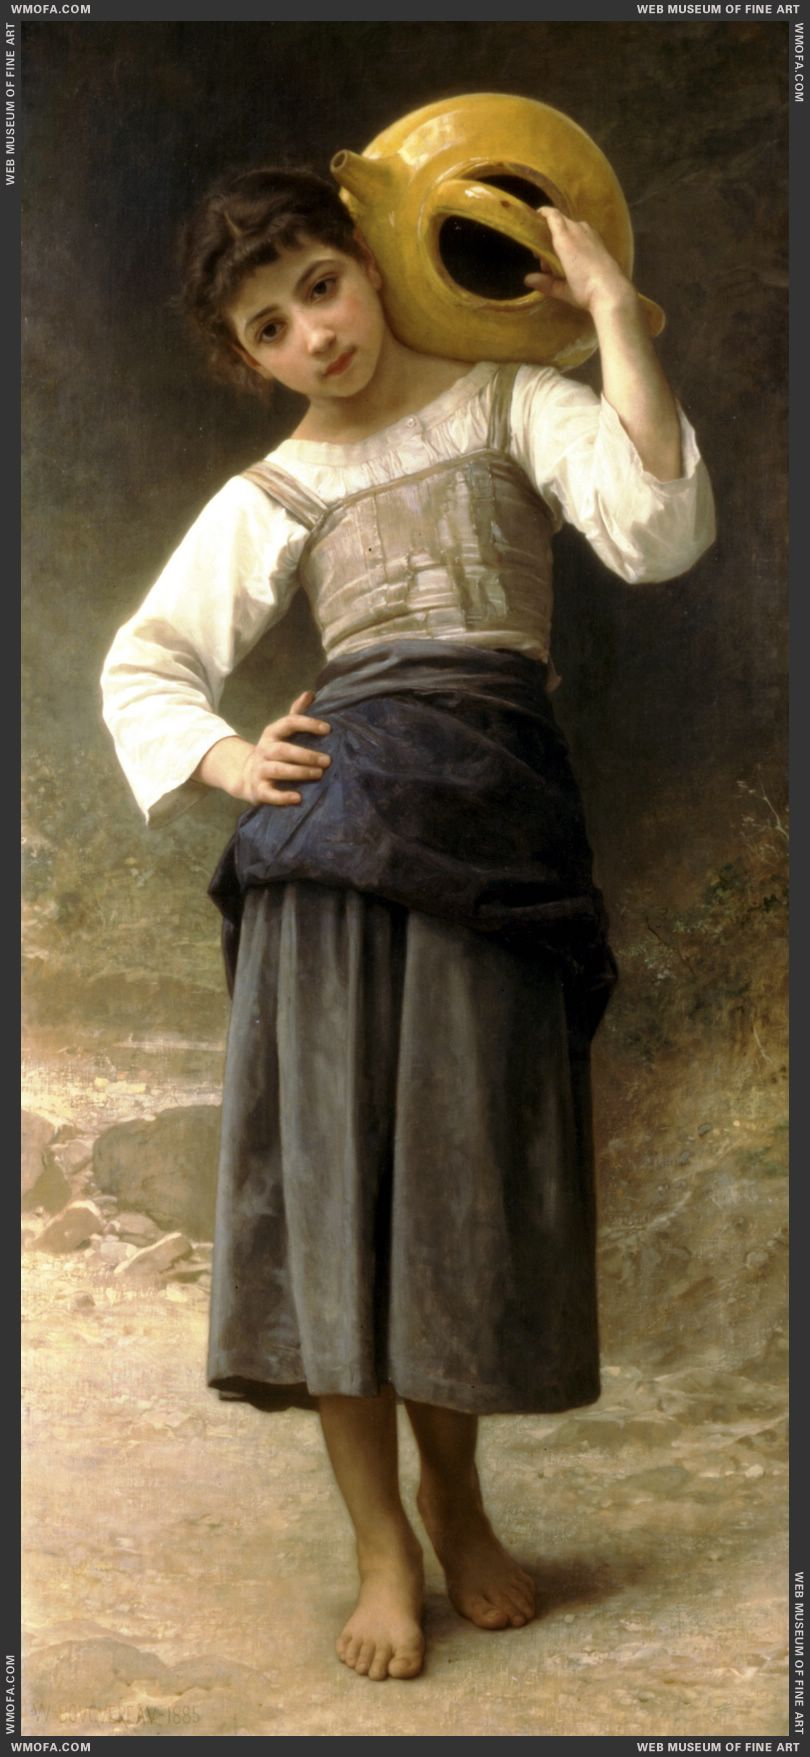 Jeune Fille Allant a la Fontaine - Young Girl Going to the Fountain 1885 by Bouguereau, William